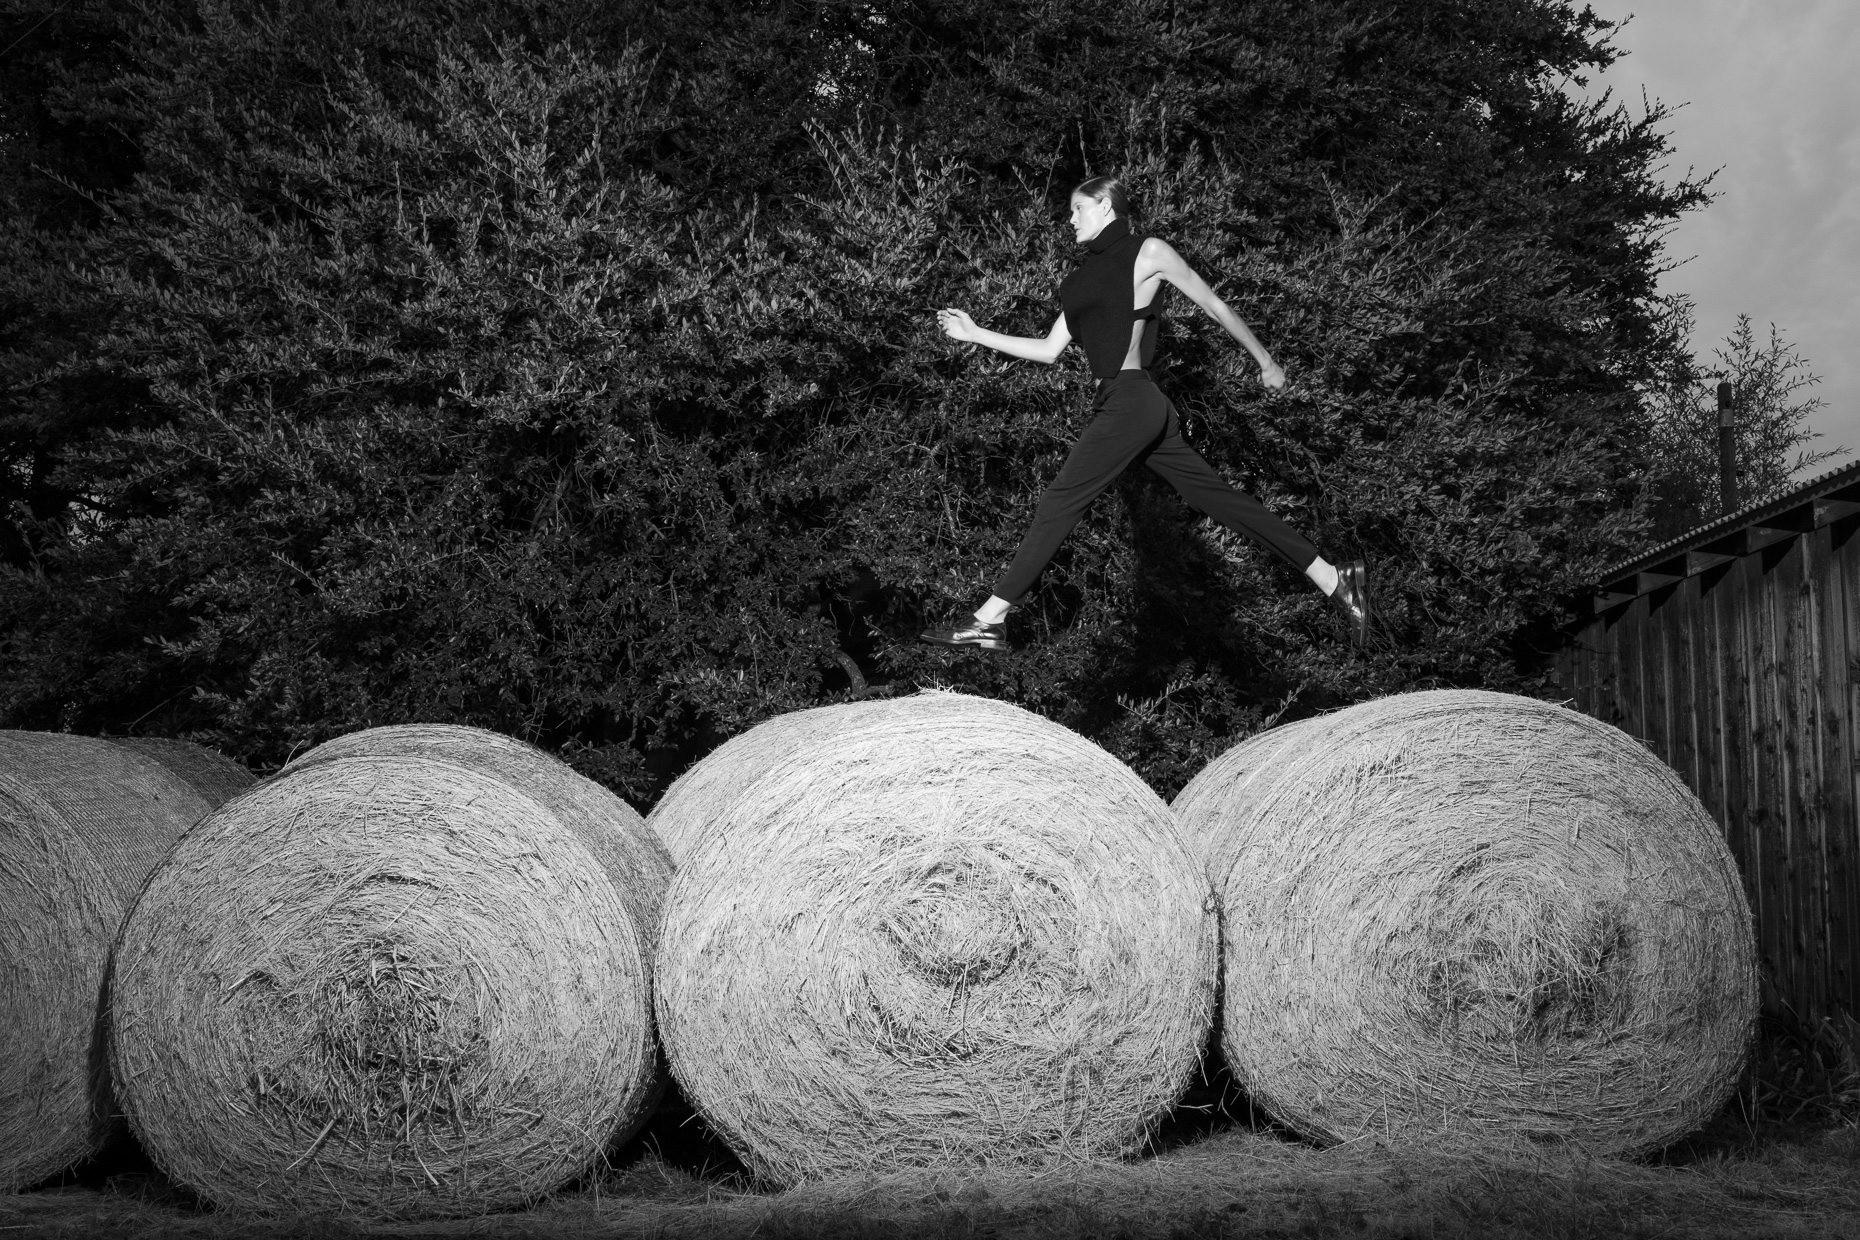 Blurring the Line | Leaping on Bales